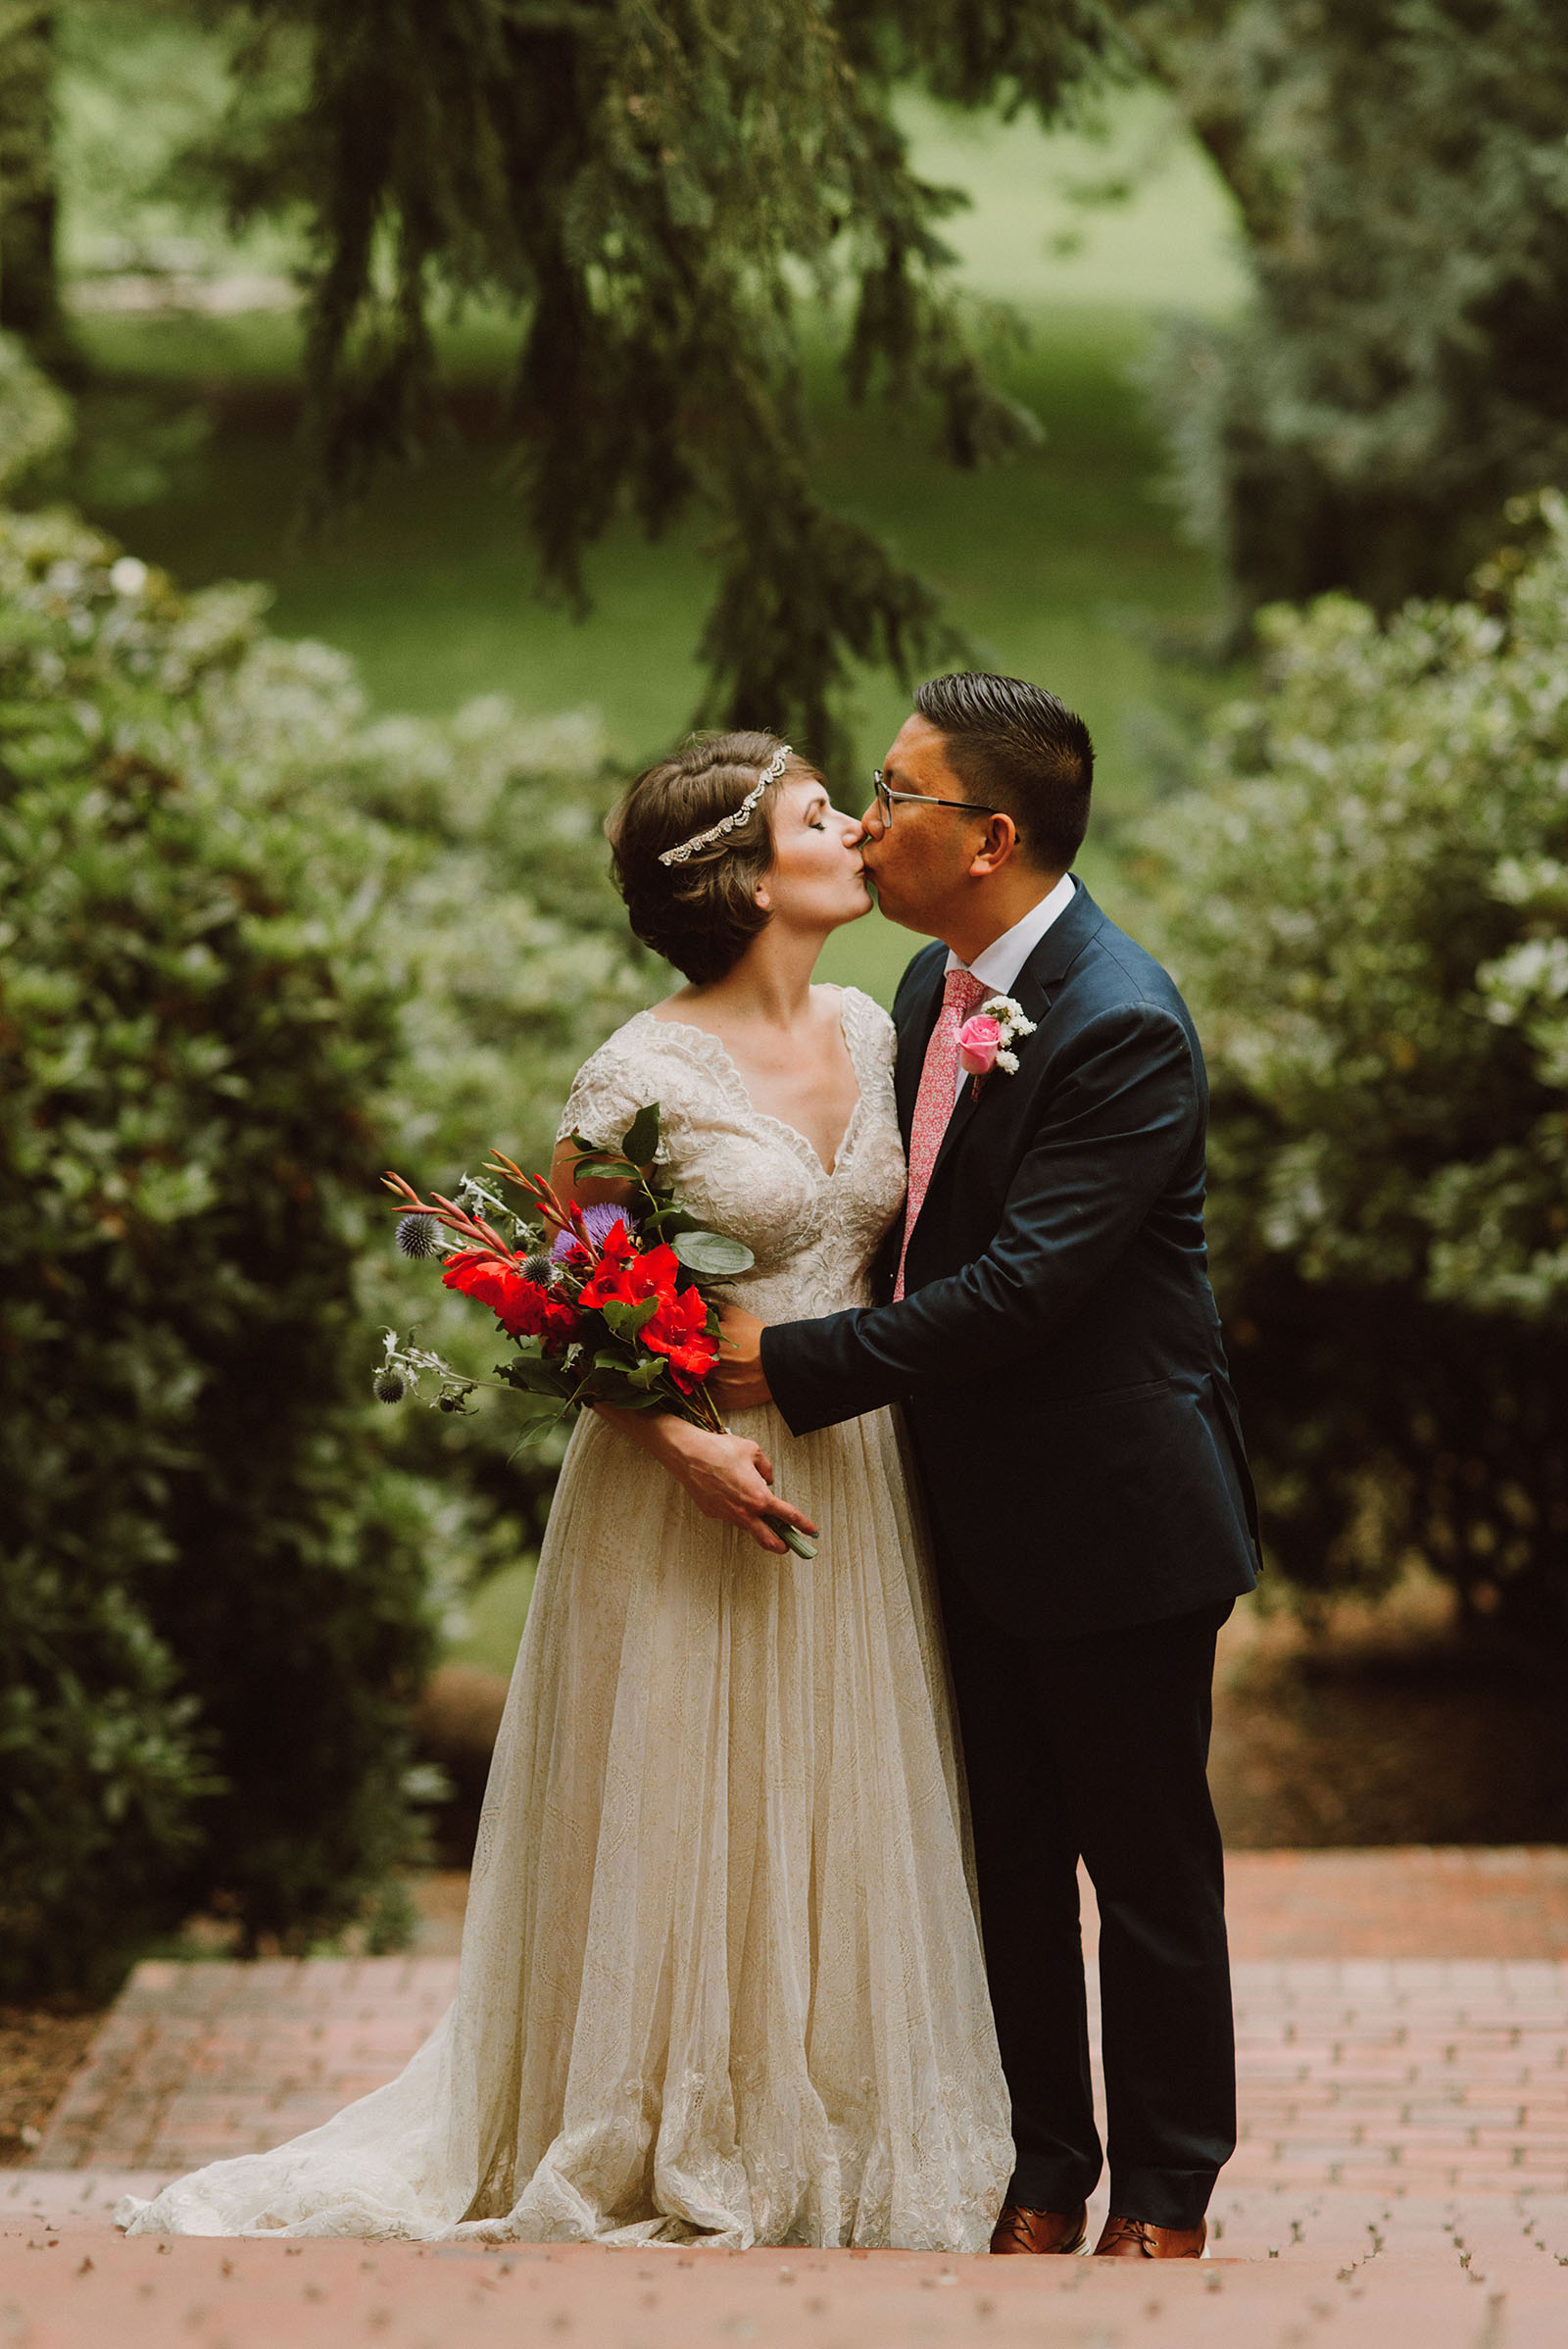 Bride and Groom kissing on the steps in Laurelhurst Park | Downtown Portland Elopement